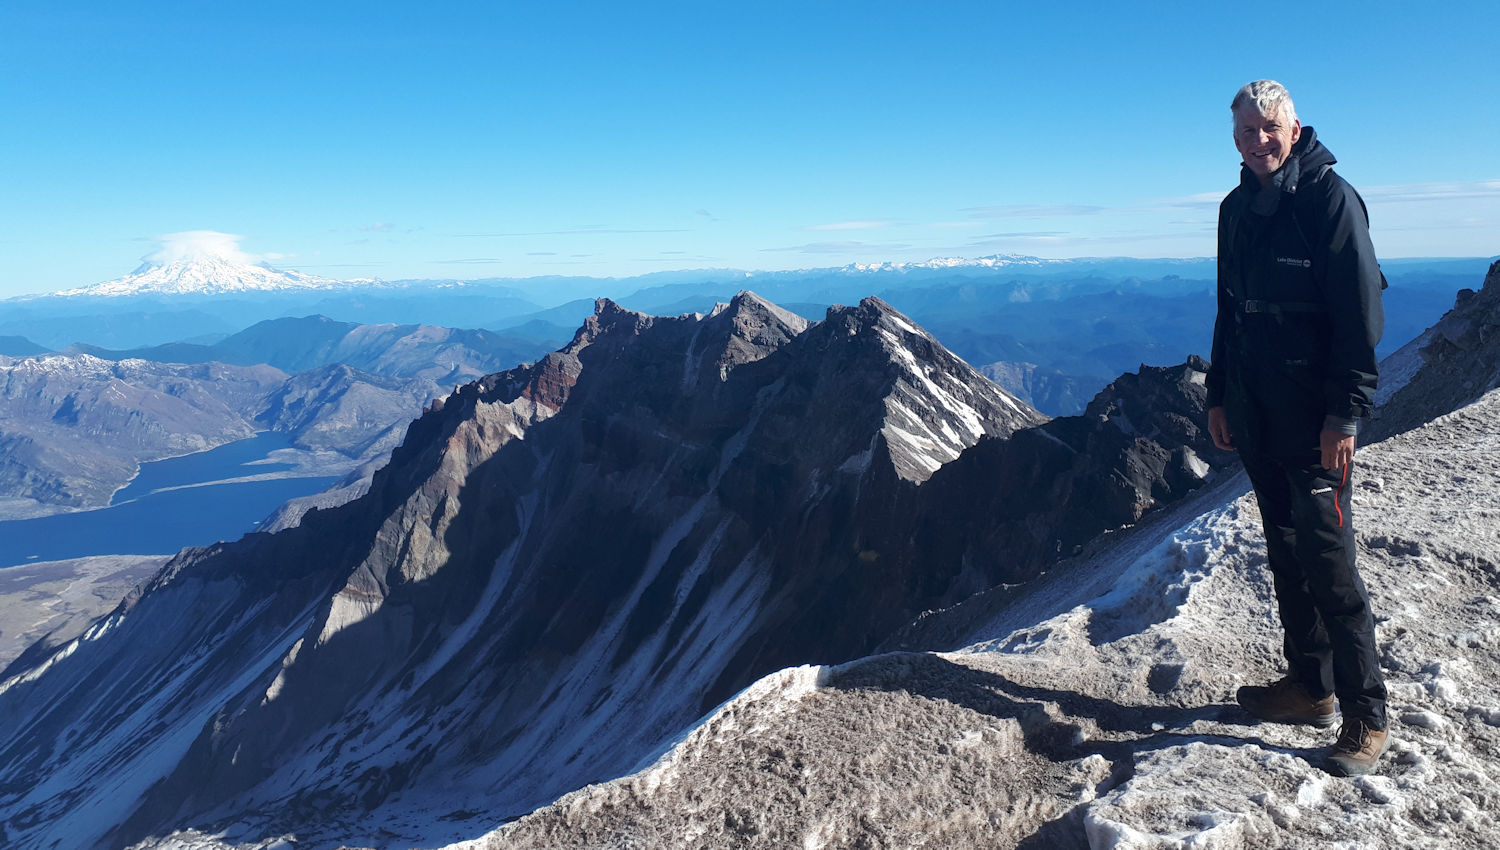 Crater Rim of Mount St Helens